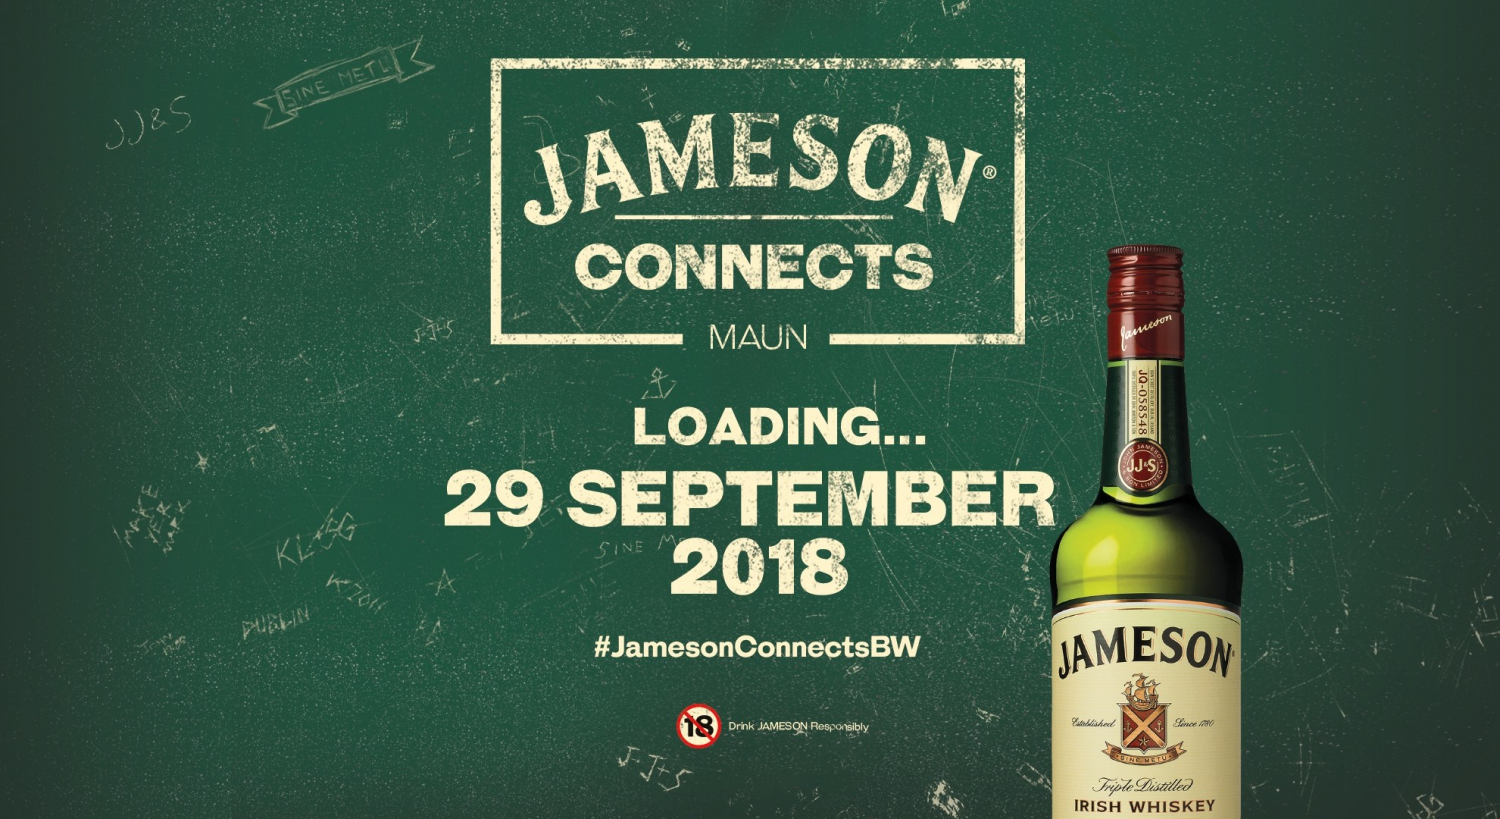 Jameson Connects Maun